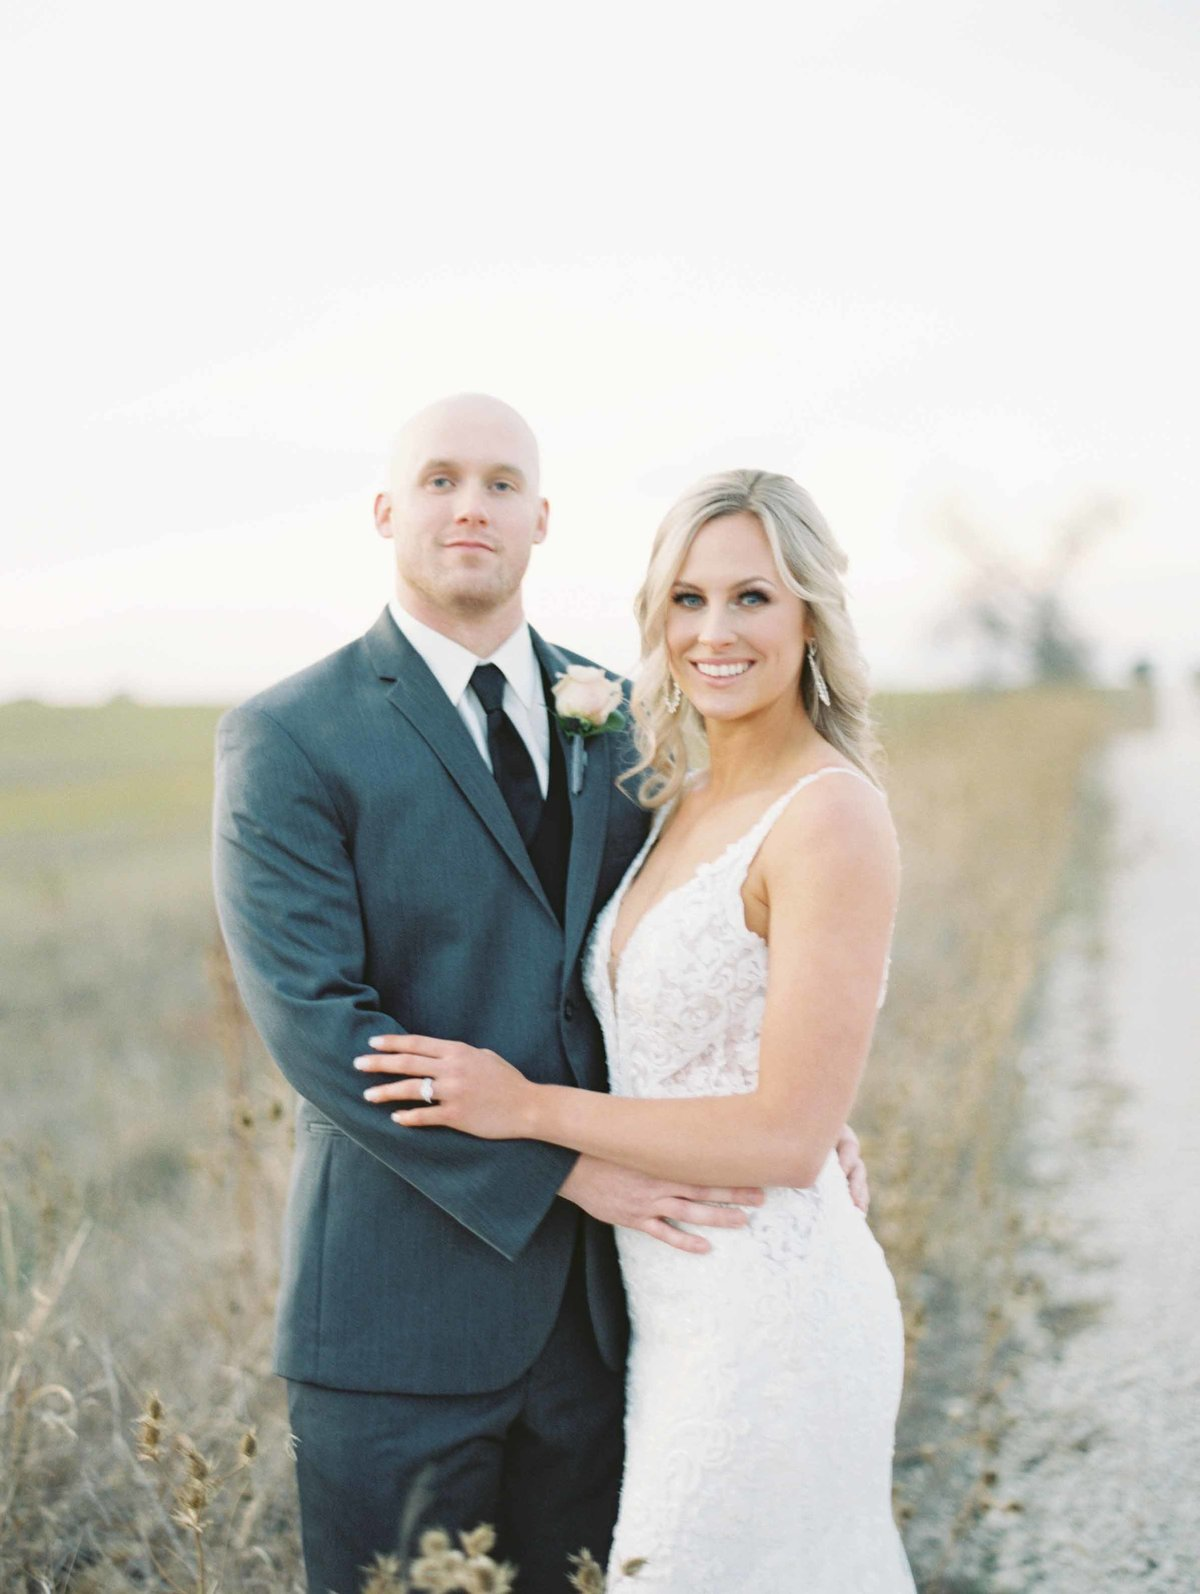 Angel_owens_photography_wedding91